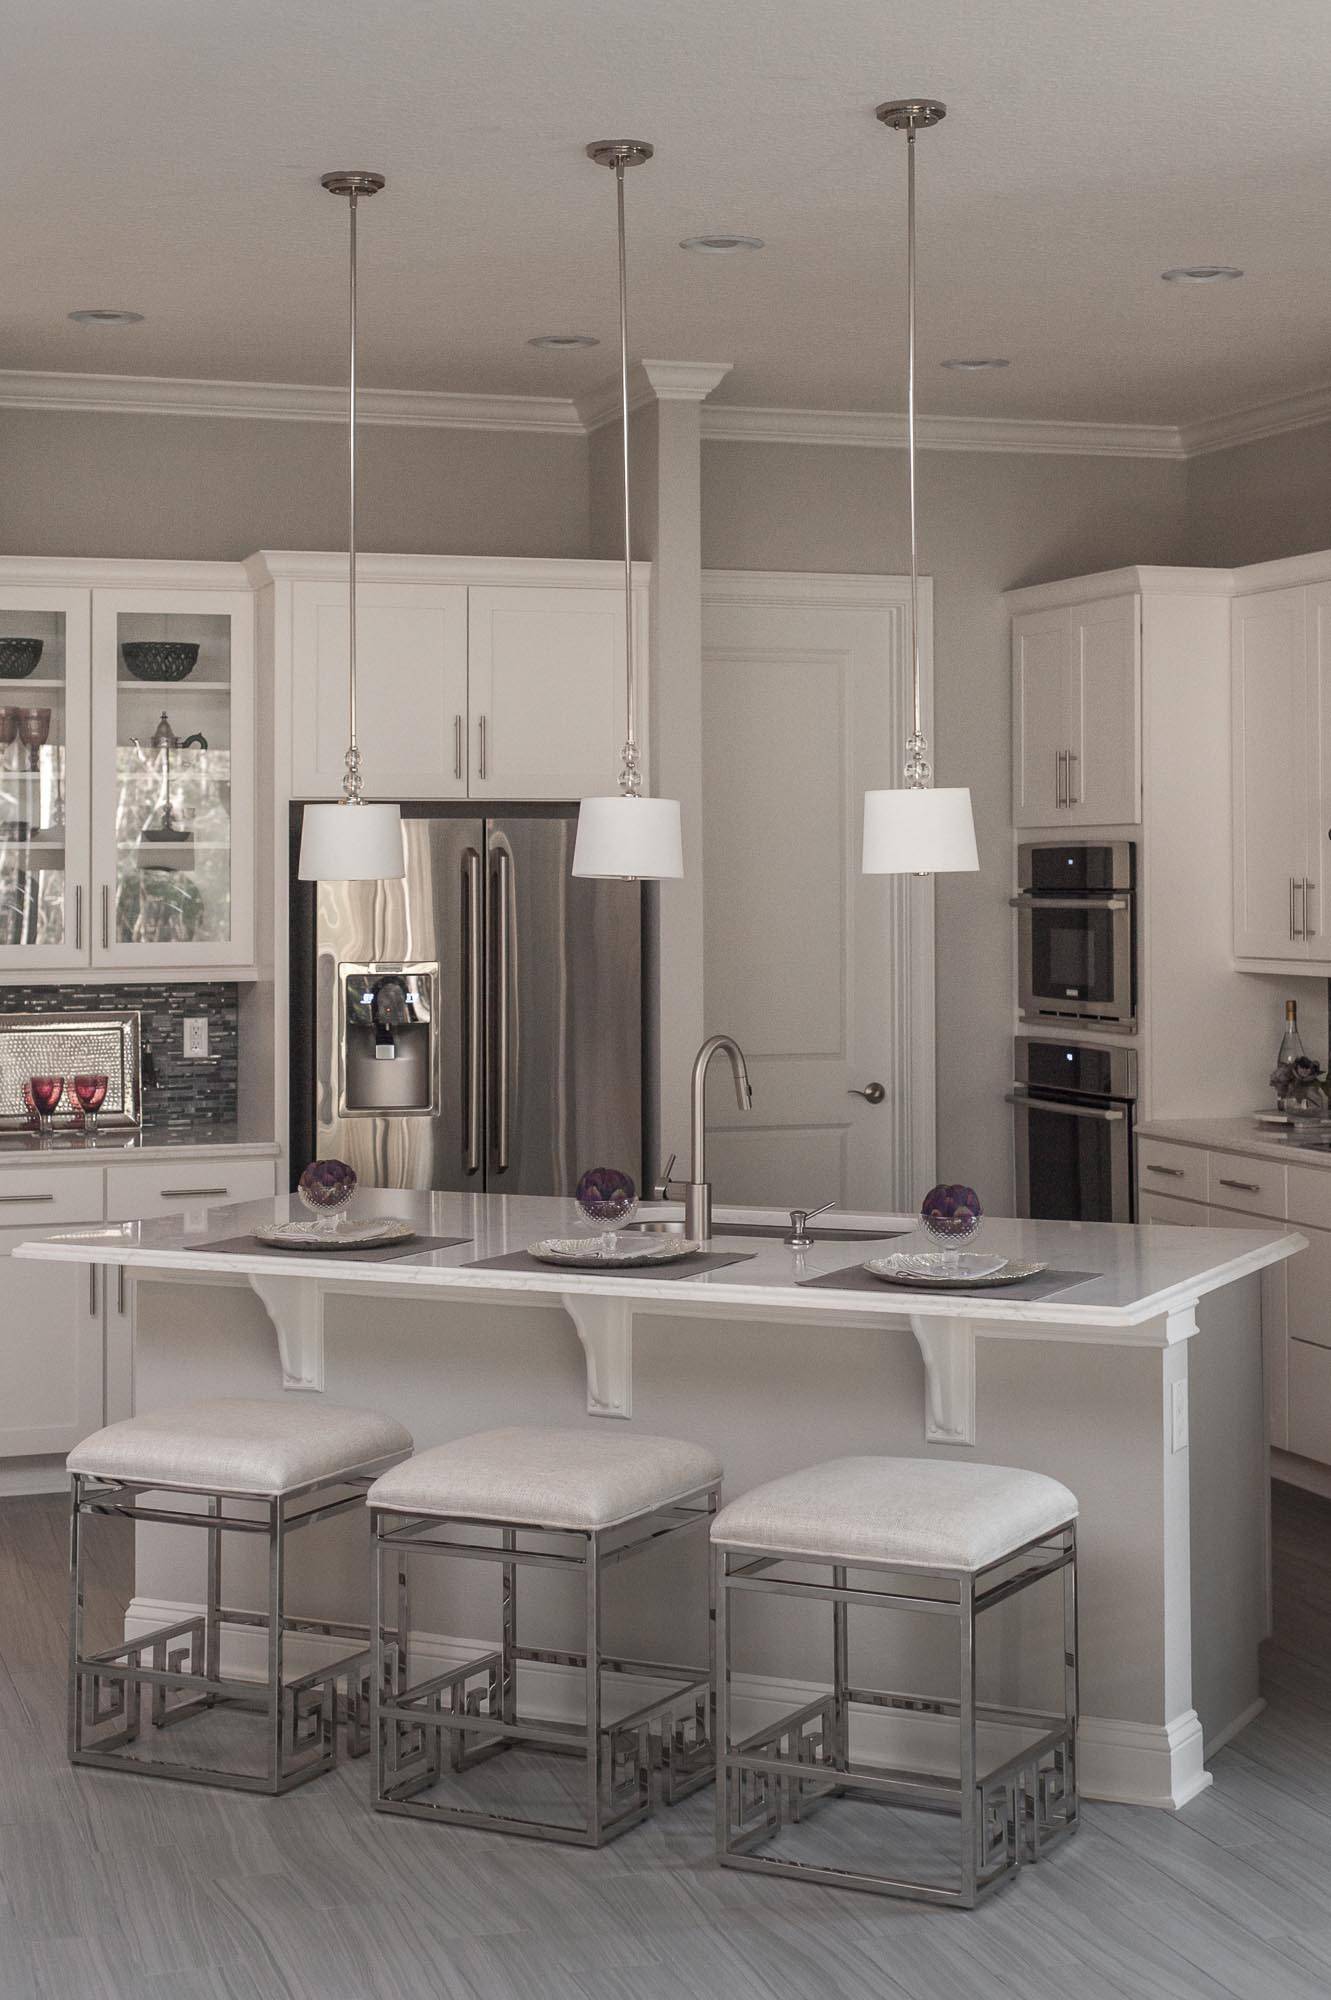 dayton-dr-horton-dr horton-st johns-jacksonville-florida-nefba-northeast florida-southeastern united states-residential interior design-transitional-kitchen-counter stool-double oven.jpg